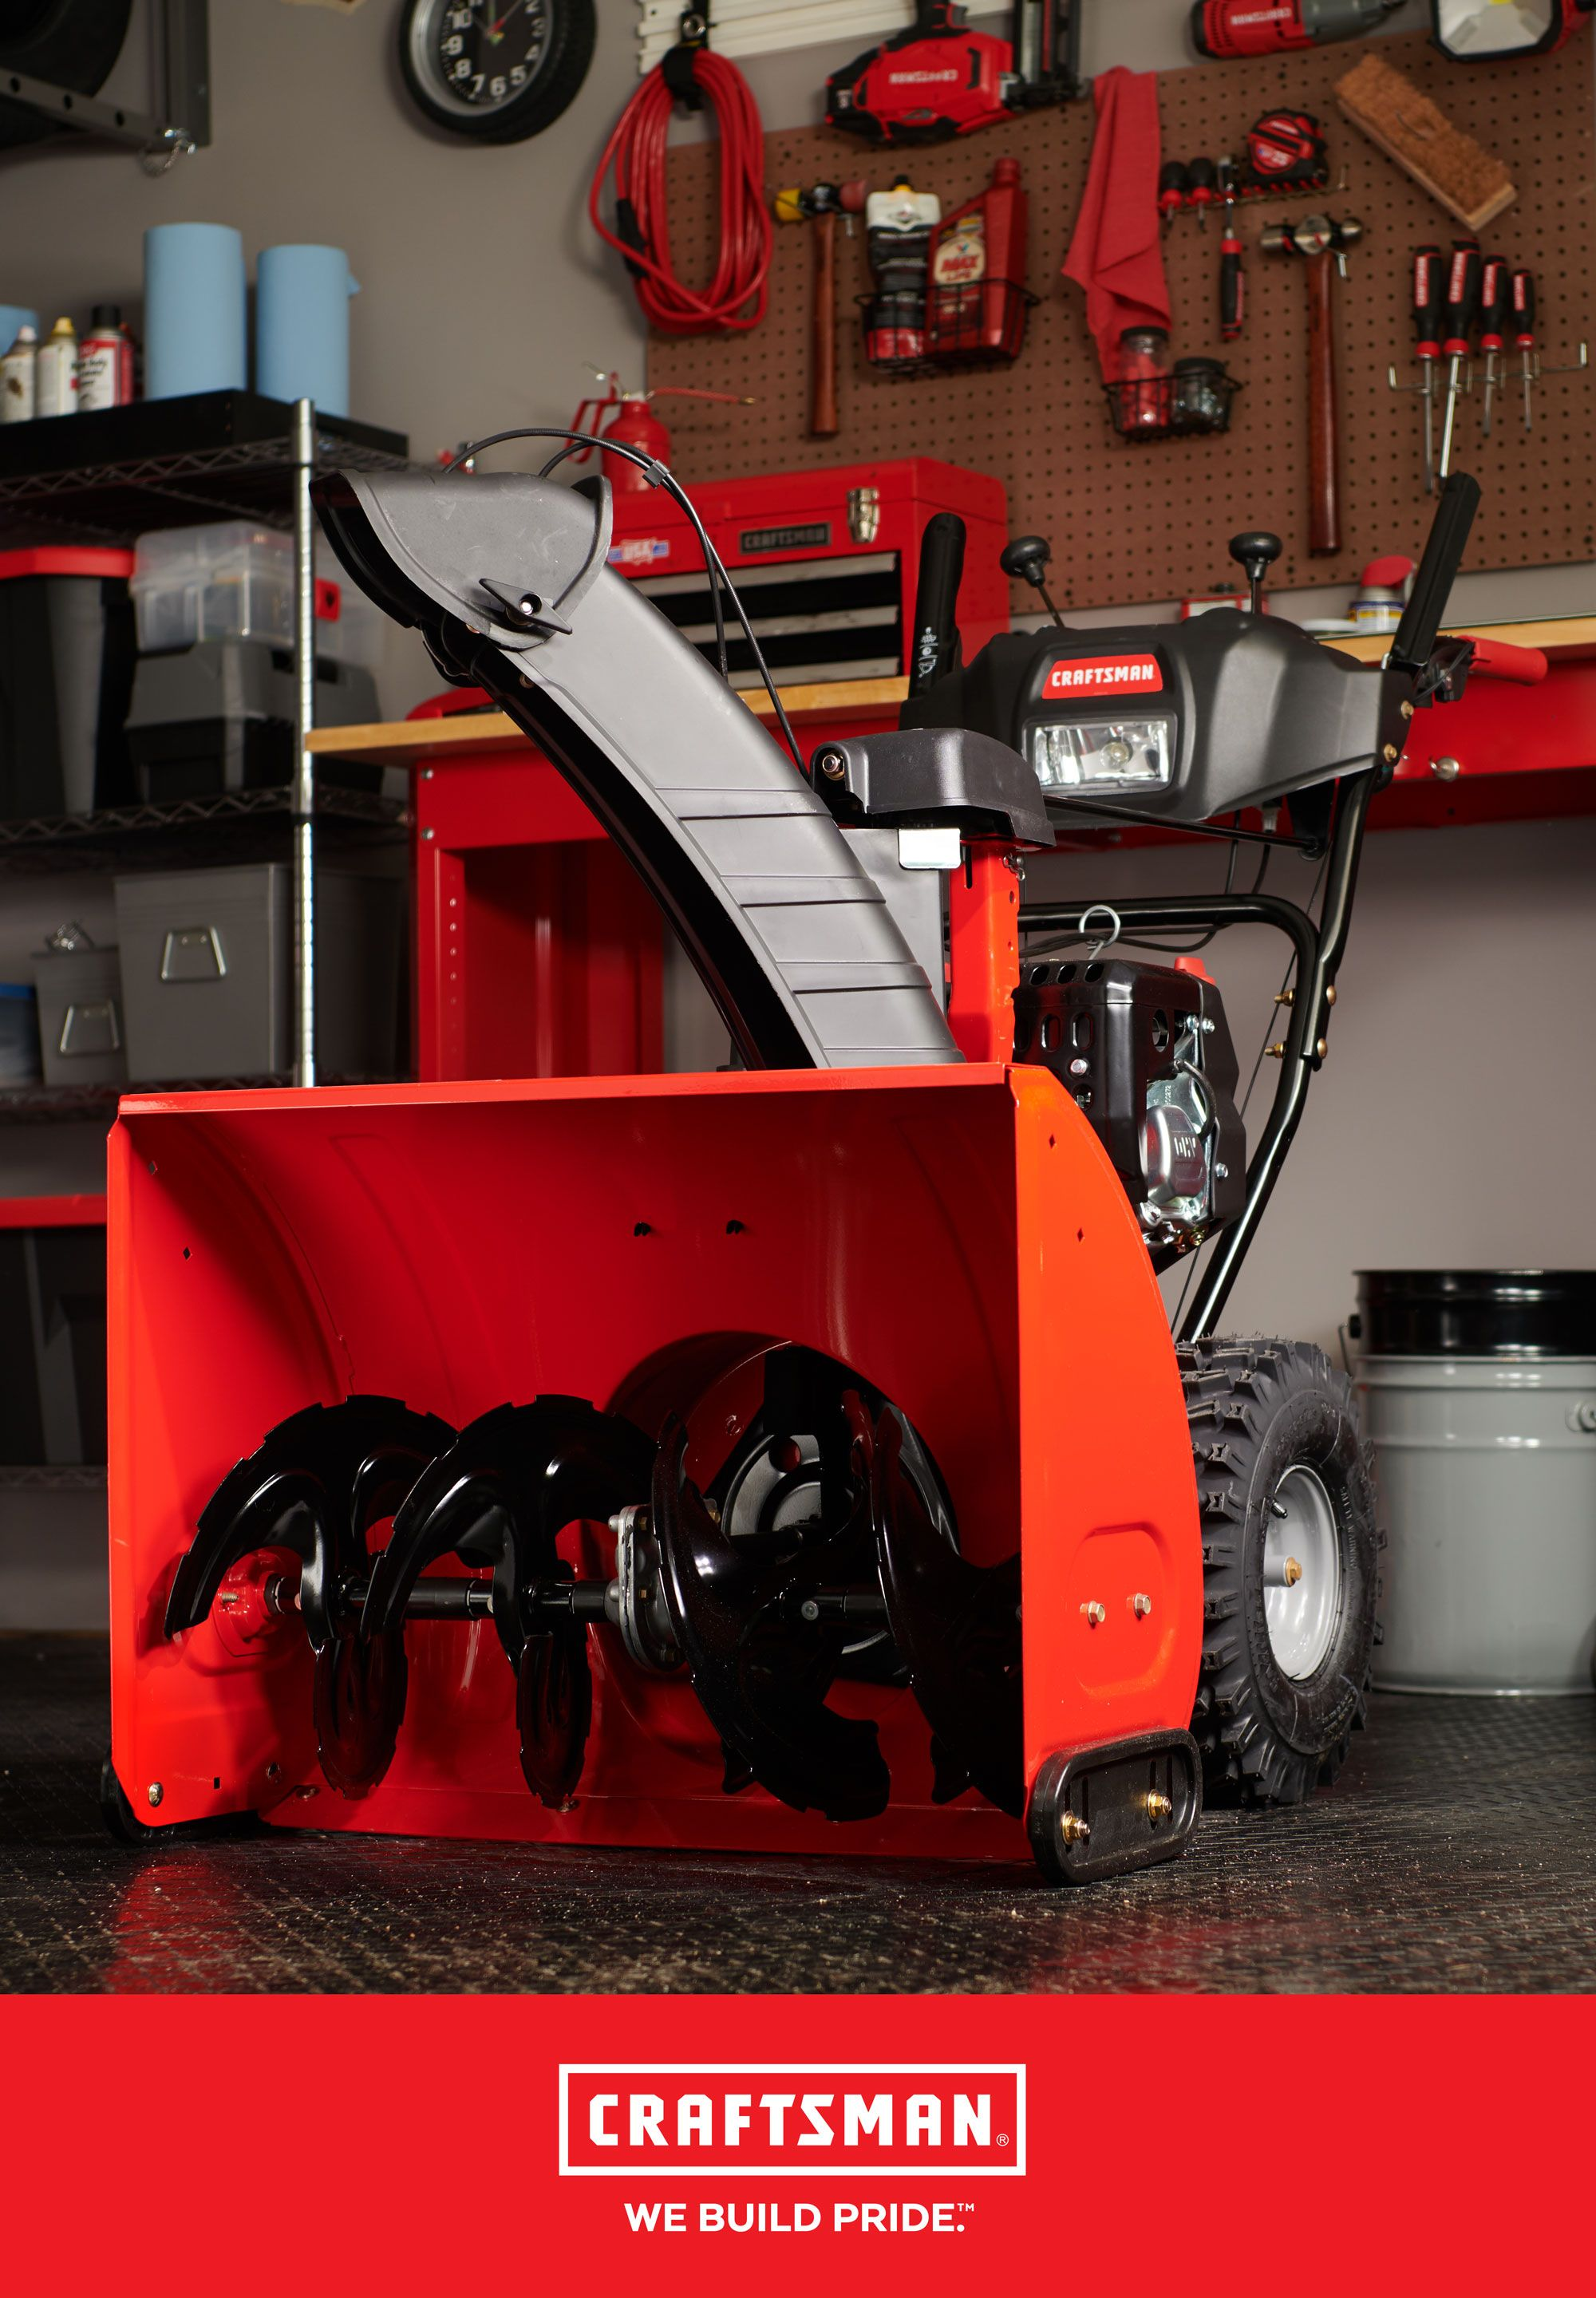 Tis The Season To Make Sure Your Snow Blower Is Ready With The New Craftsman 28 In 243cc Electric Start Two Stage Snow Blow Snow Blower Front Yard Craftsman